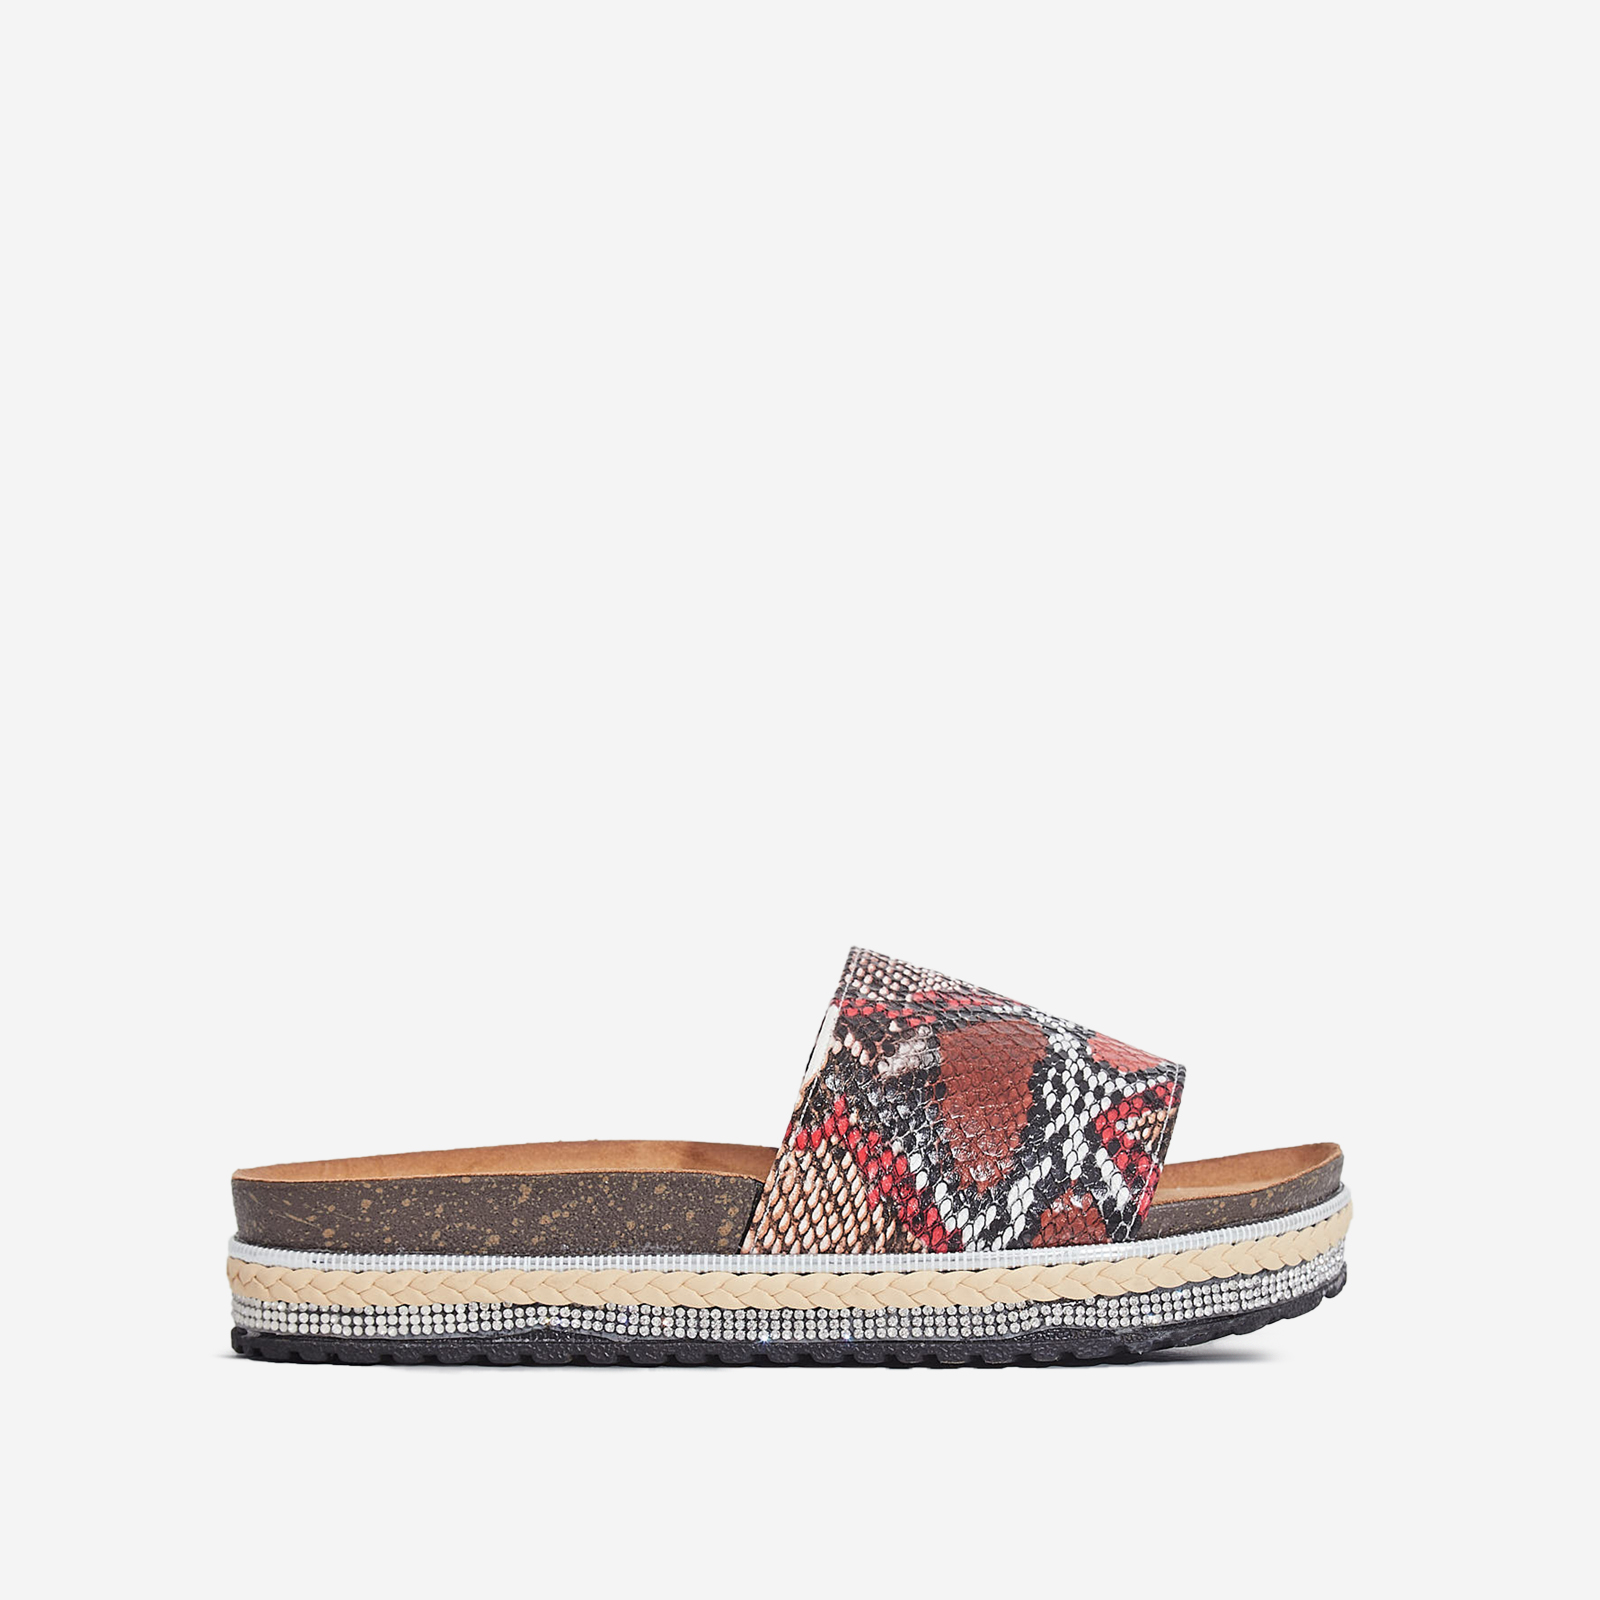 Calli Studded Detail Espadrille Sandal In Red Snake Print Faux Leather